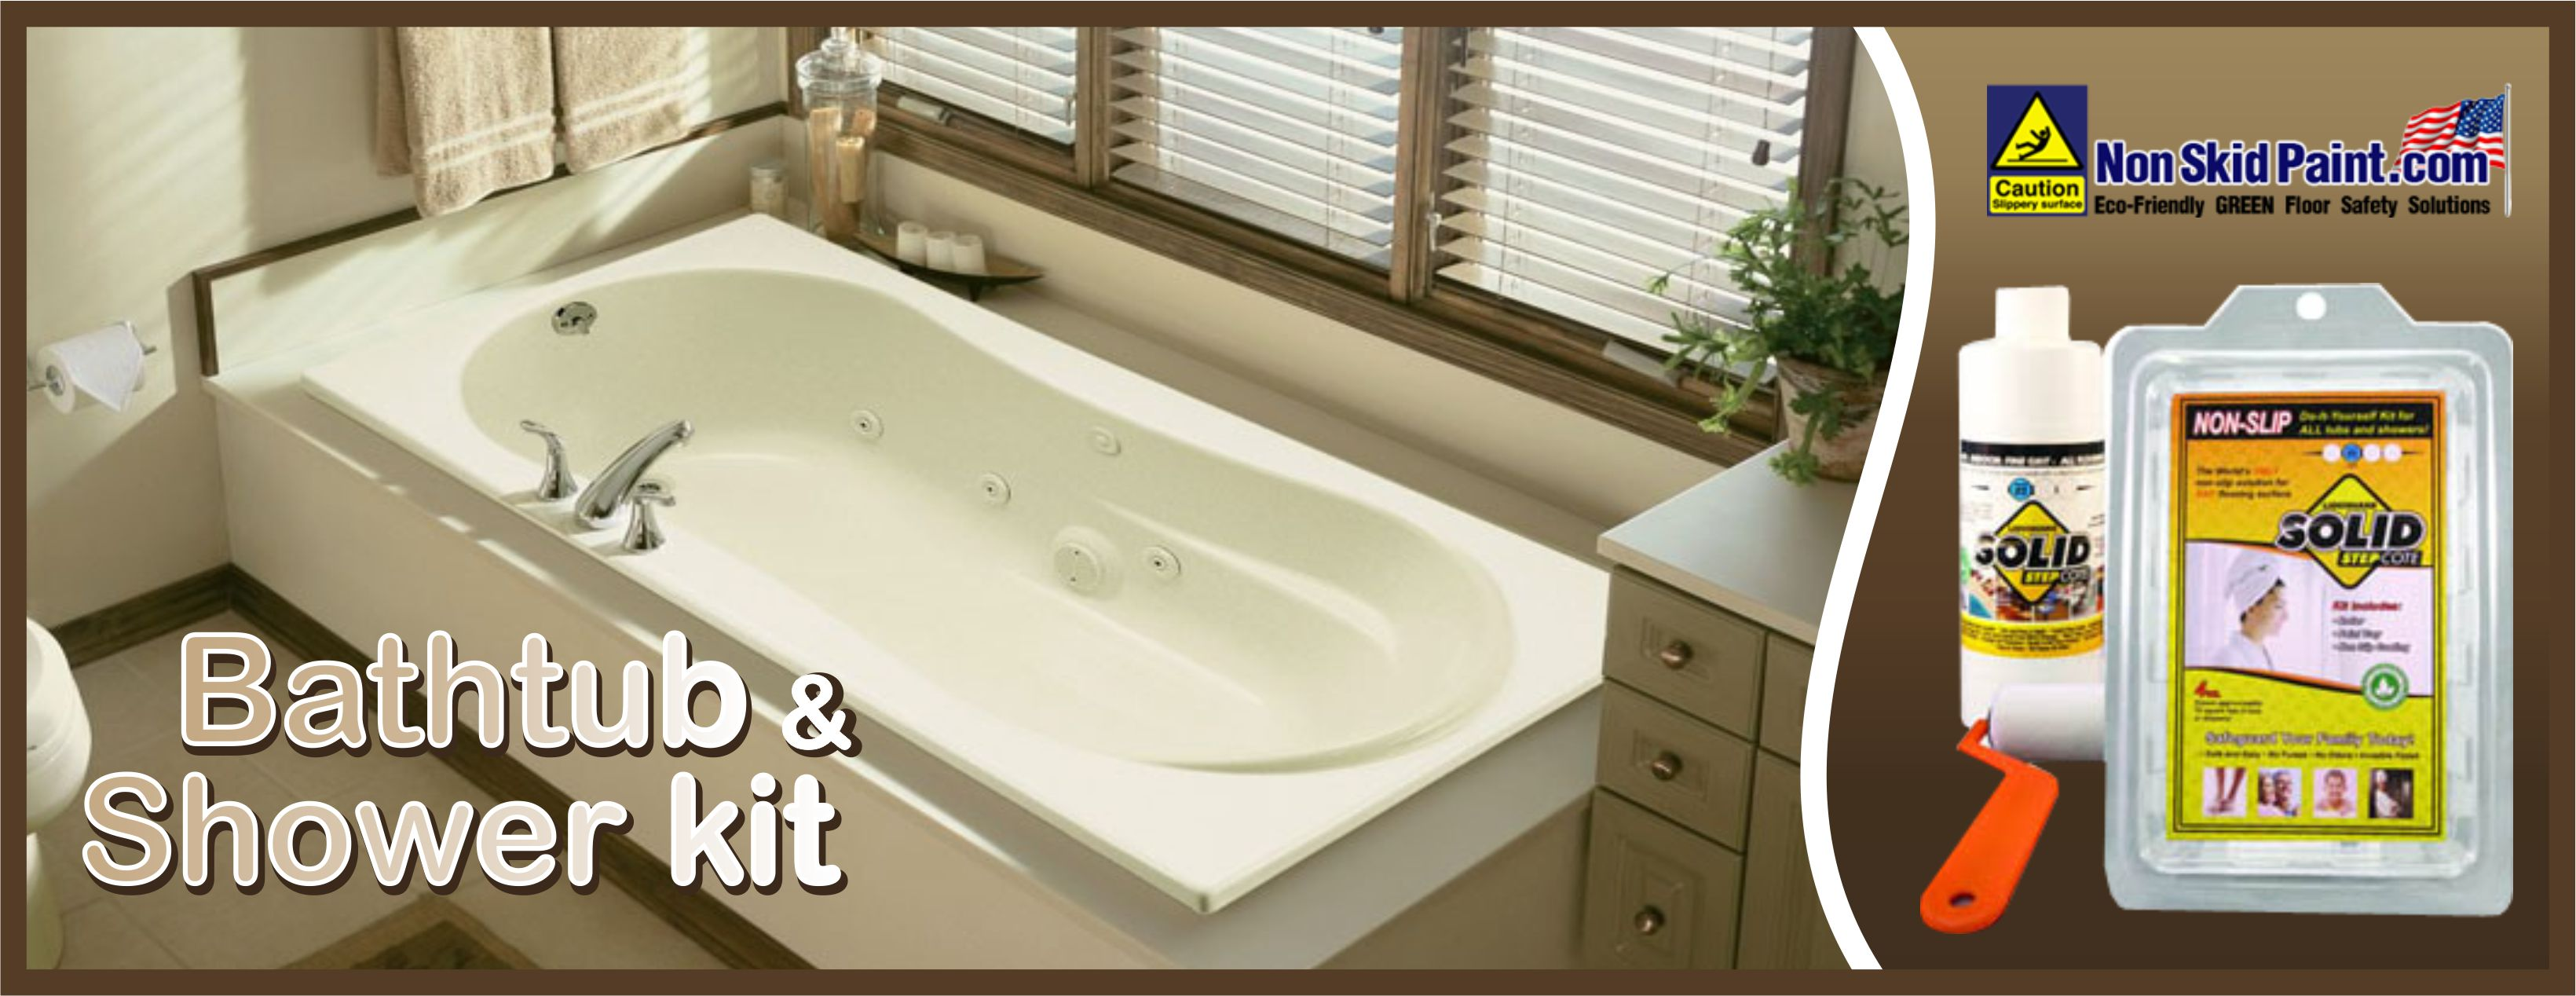 refinish old refinishing reviews tub contractors bathtub paint painting refurbishing acrylic kit plastic bath